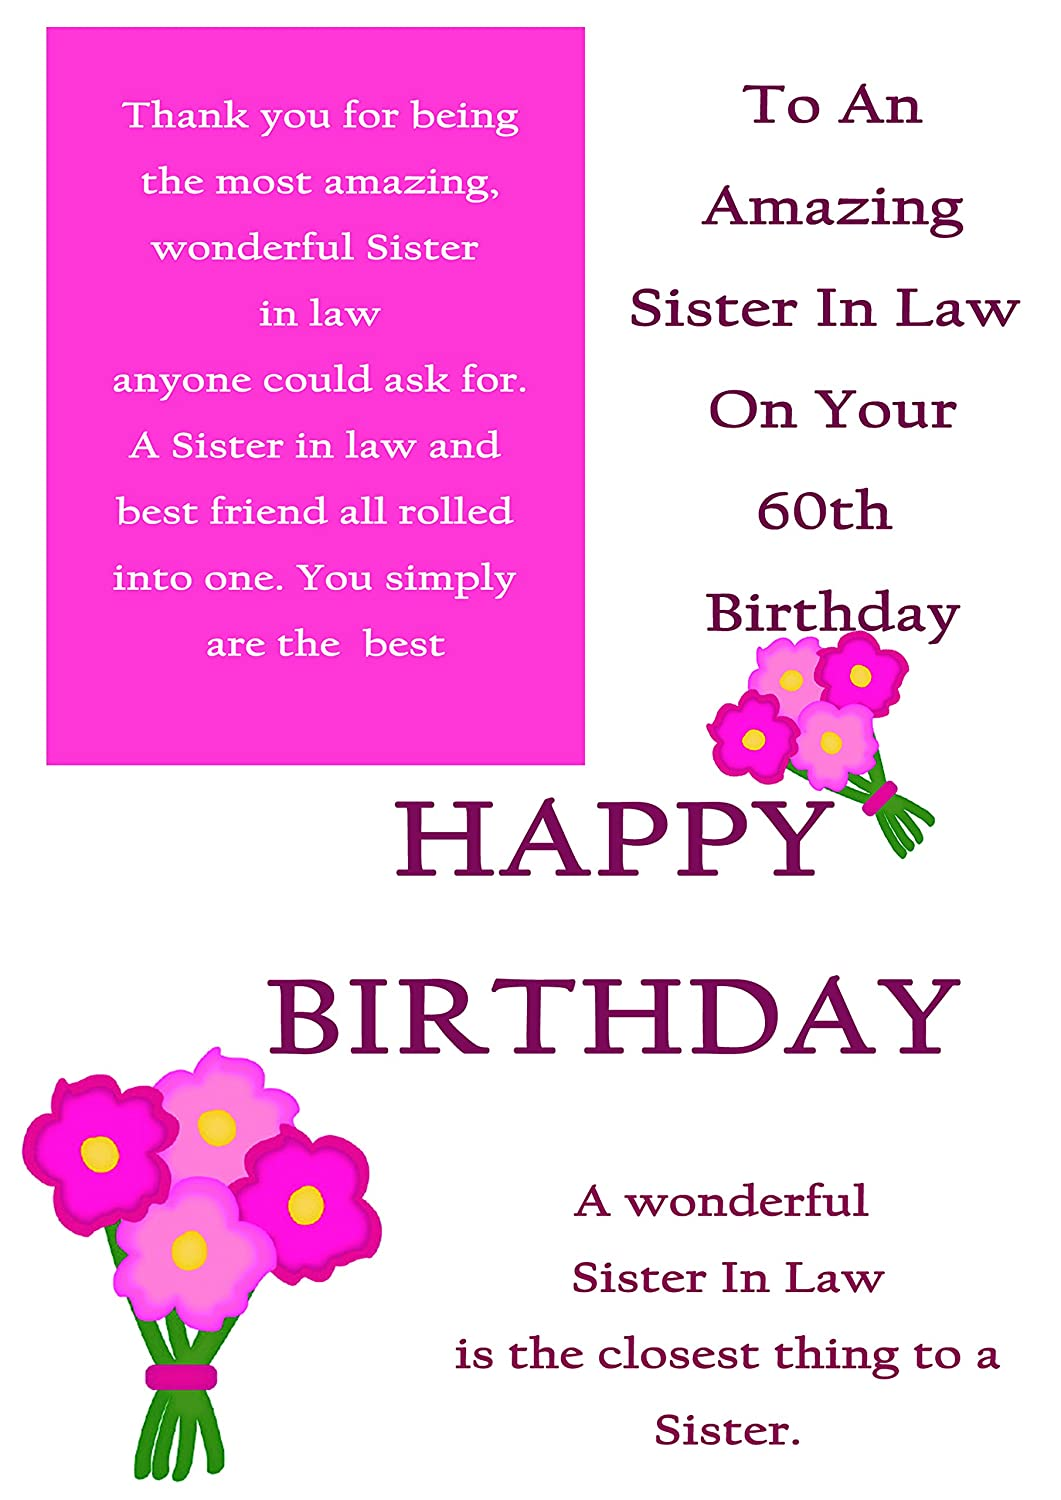 Sister In Law 60th Birthday Card With Removable Laminate Amazoncouk Office Products